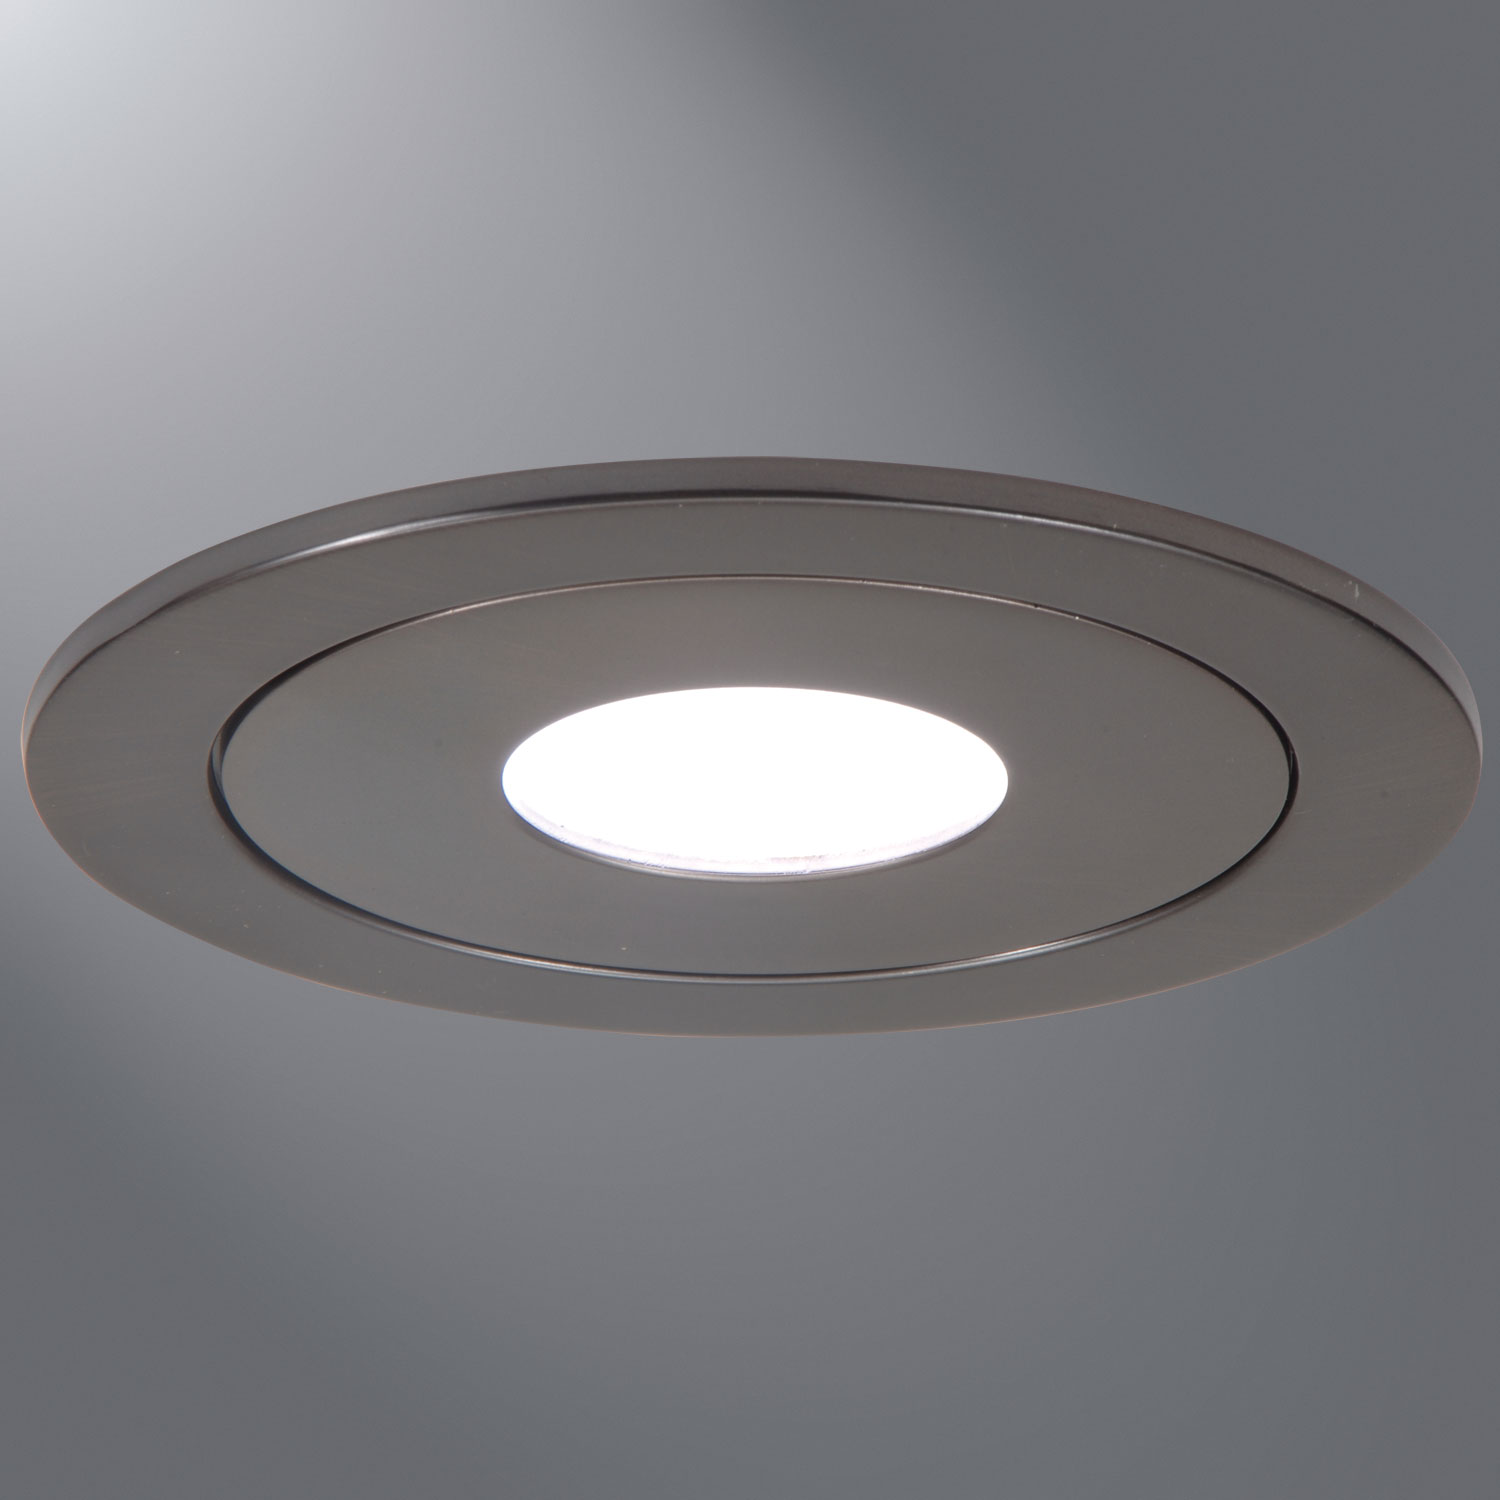 990 4 inch pinhole downlight trim by halo 990sn